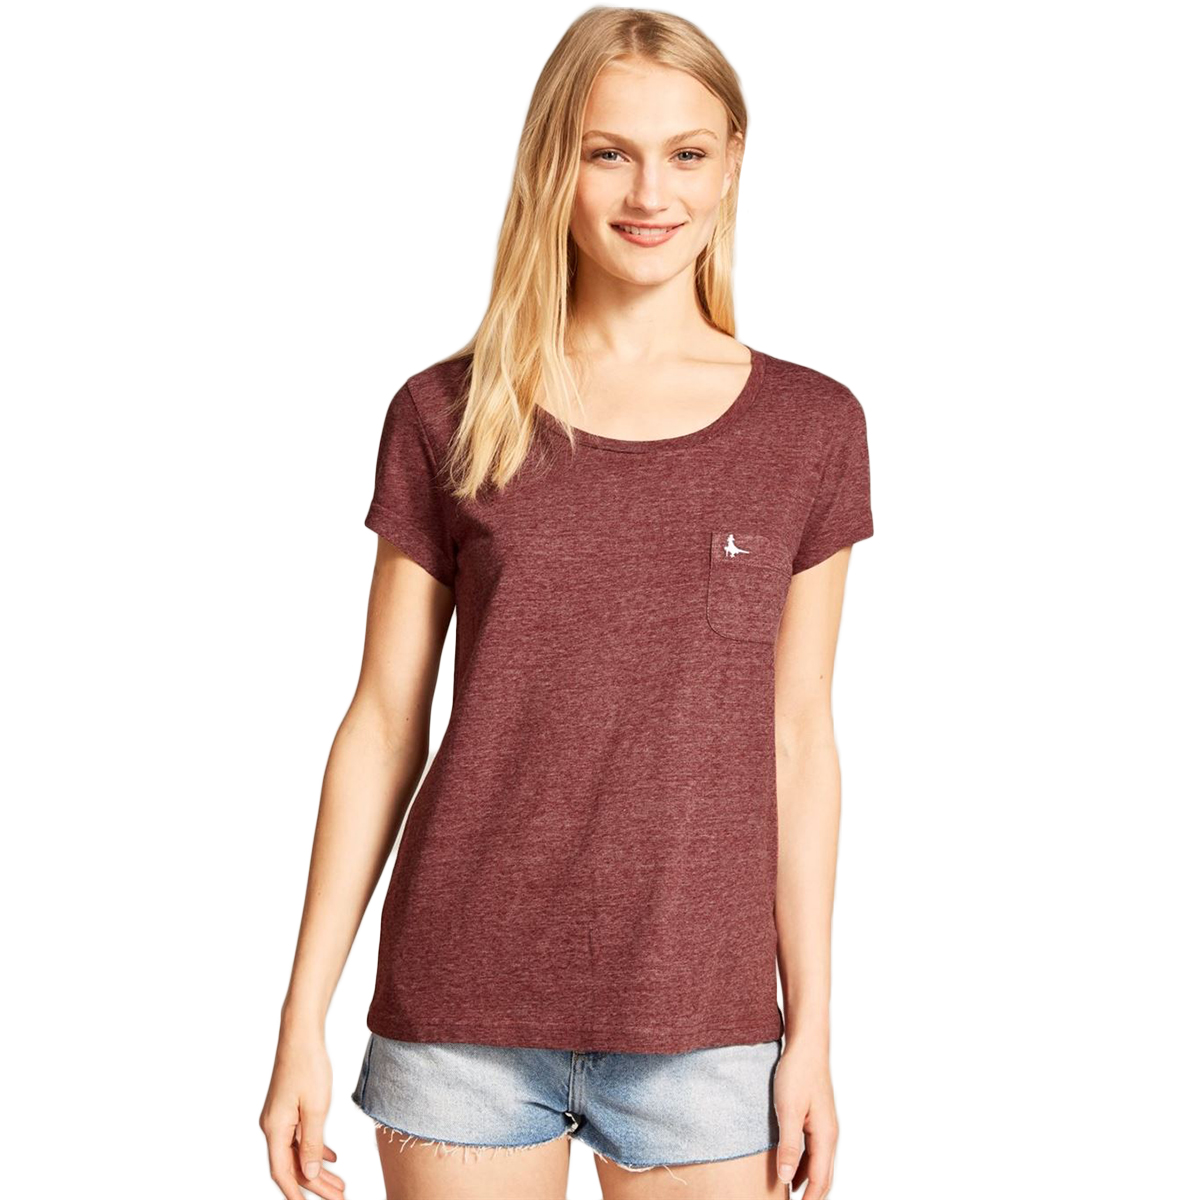 Jack Wills Fullford Classic Short-Sleeve Pocket Tee - Red, 0